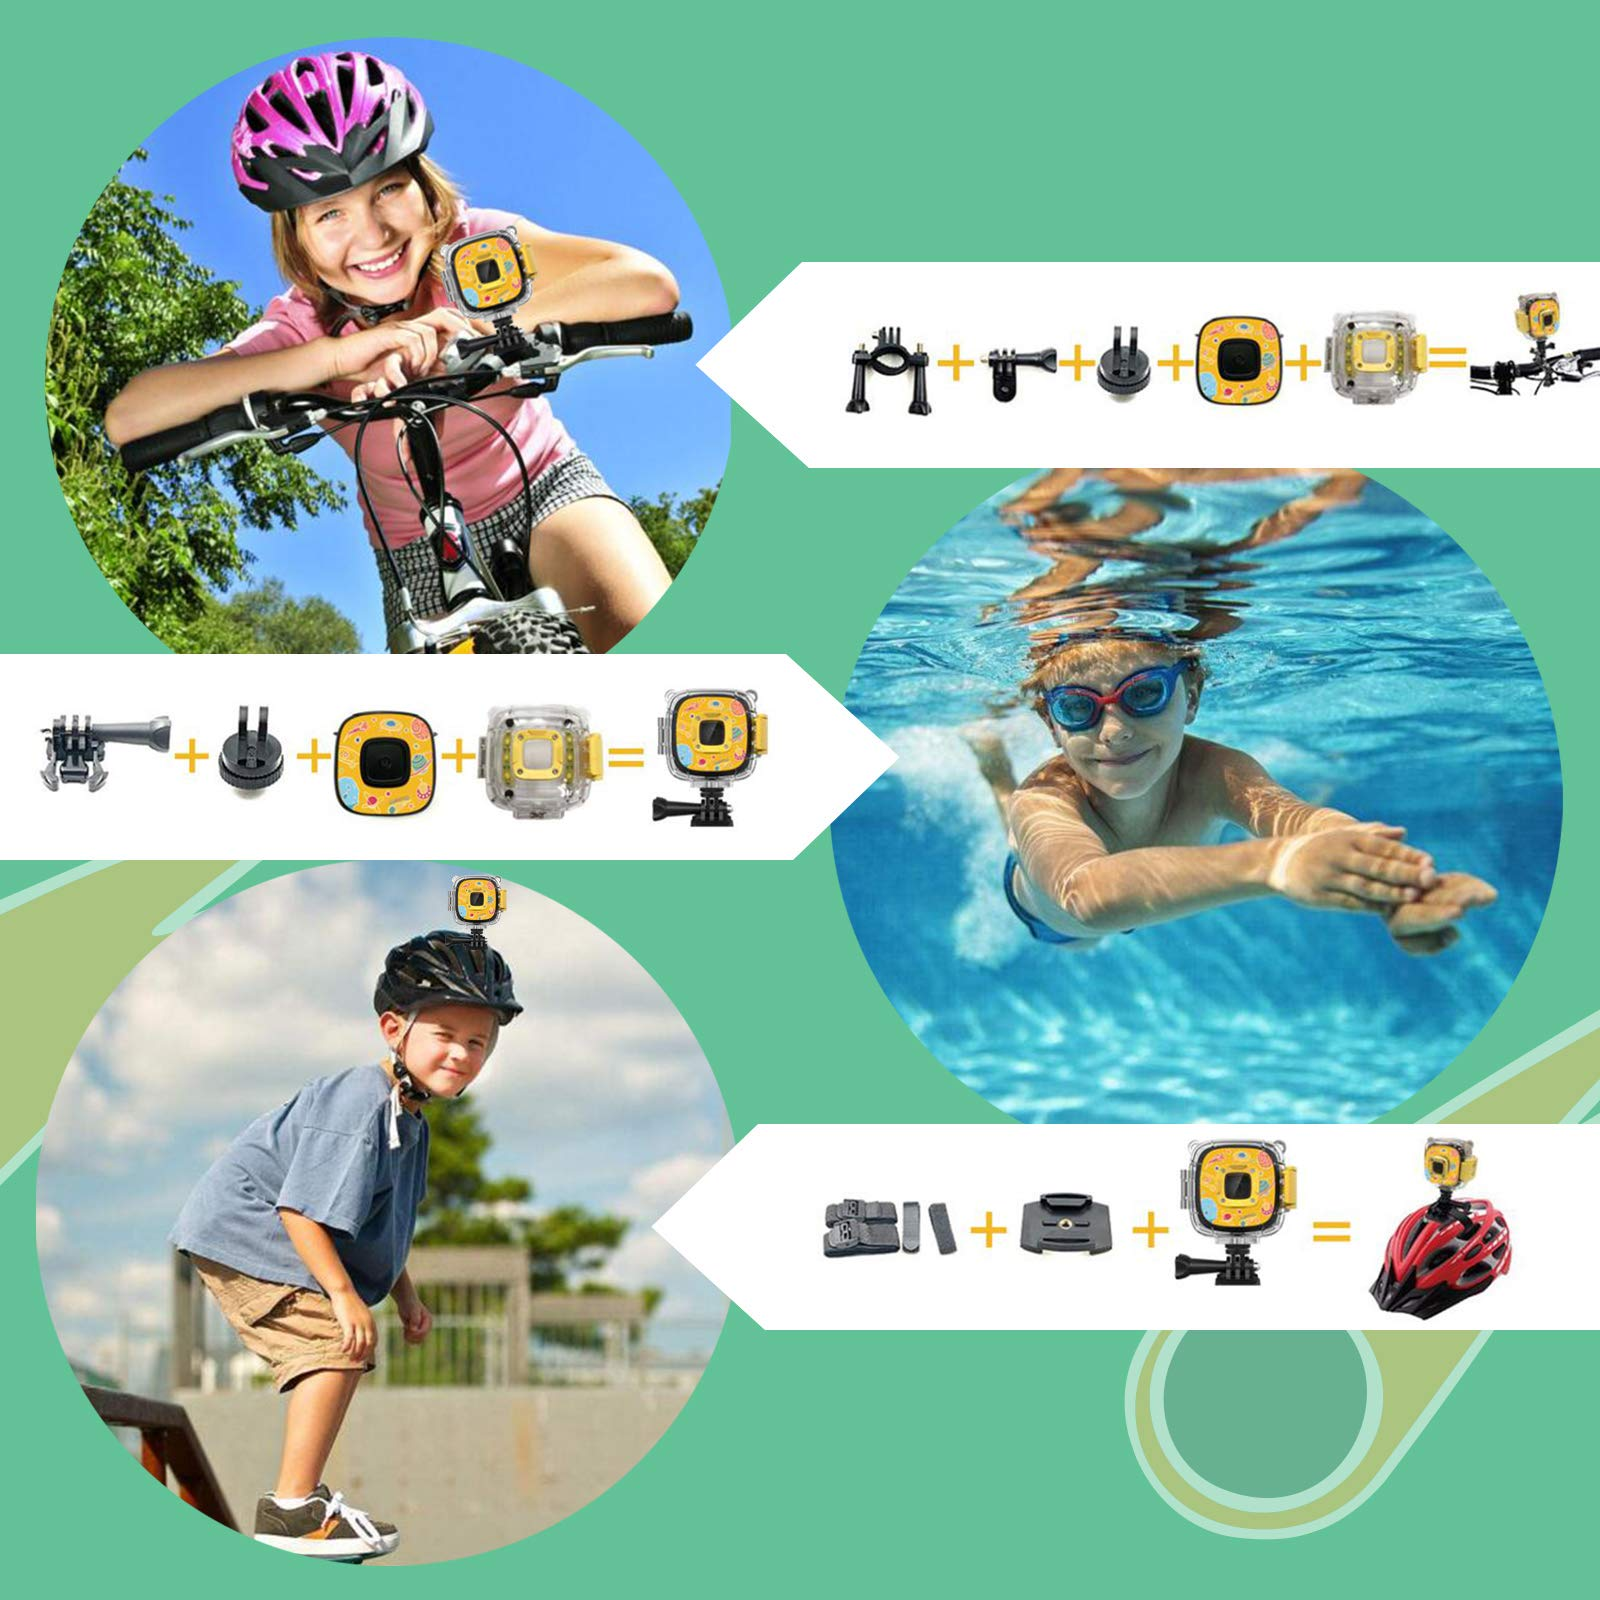 Rosefray Kids Camera,1080P HD Kids Action Camera, Sports Kids Digital Cameras for Boys and Girls, 16GB SD Card, Yellow by Rosefray (Image #4)